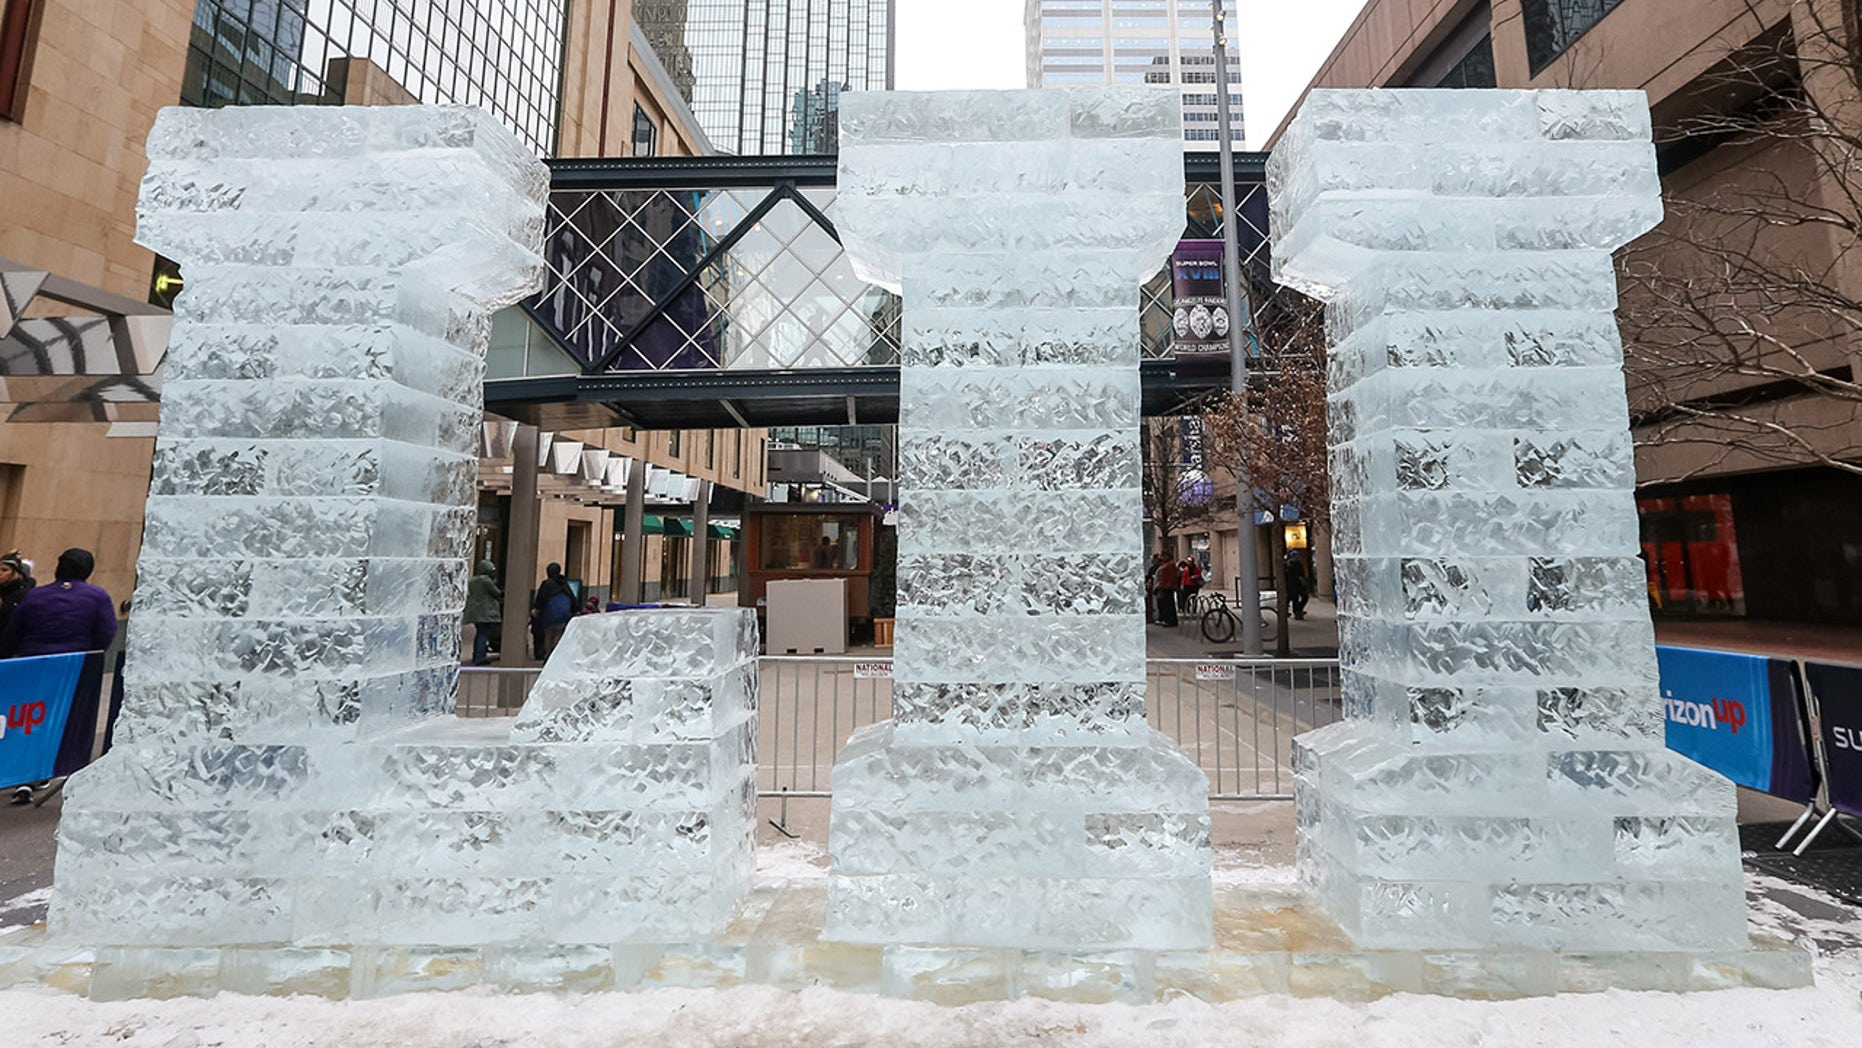 A view of an ice sculpture for Super Bowl LII on Nicollet Mall at the Super Bowl Live event on Jan. 30 in Minneapolis, MN.